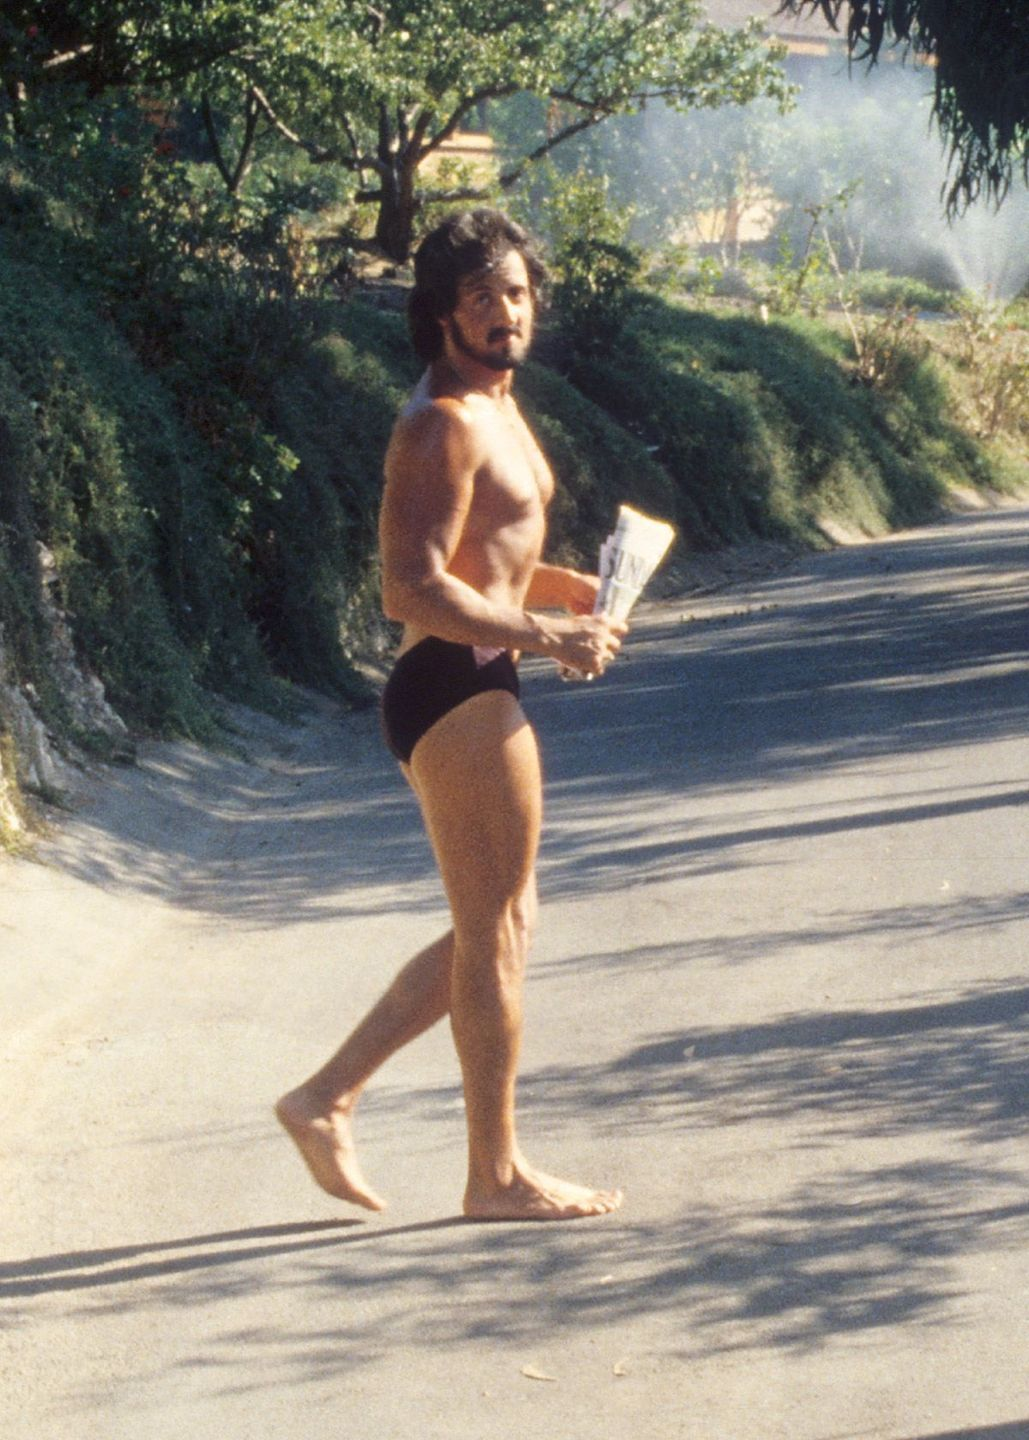 1979: Sylvester Stallone retrieves his morning paper in his skivvies